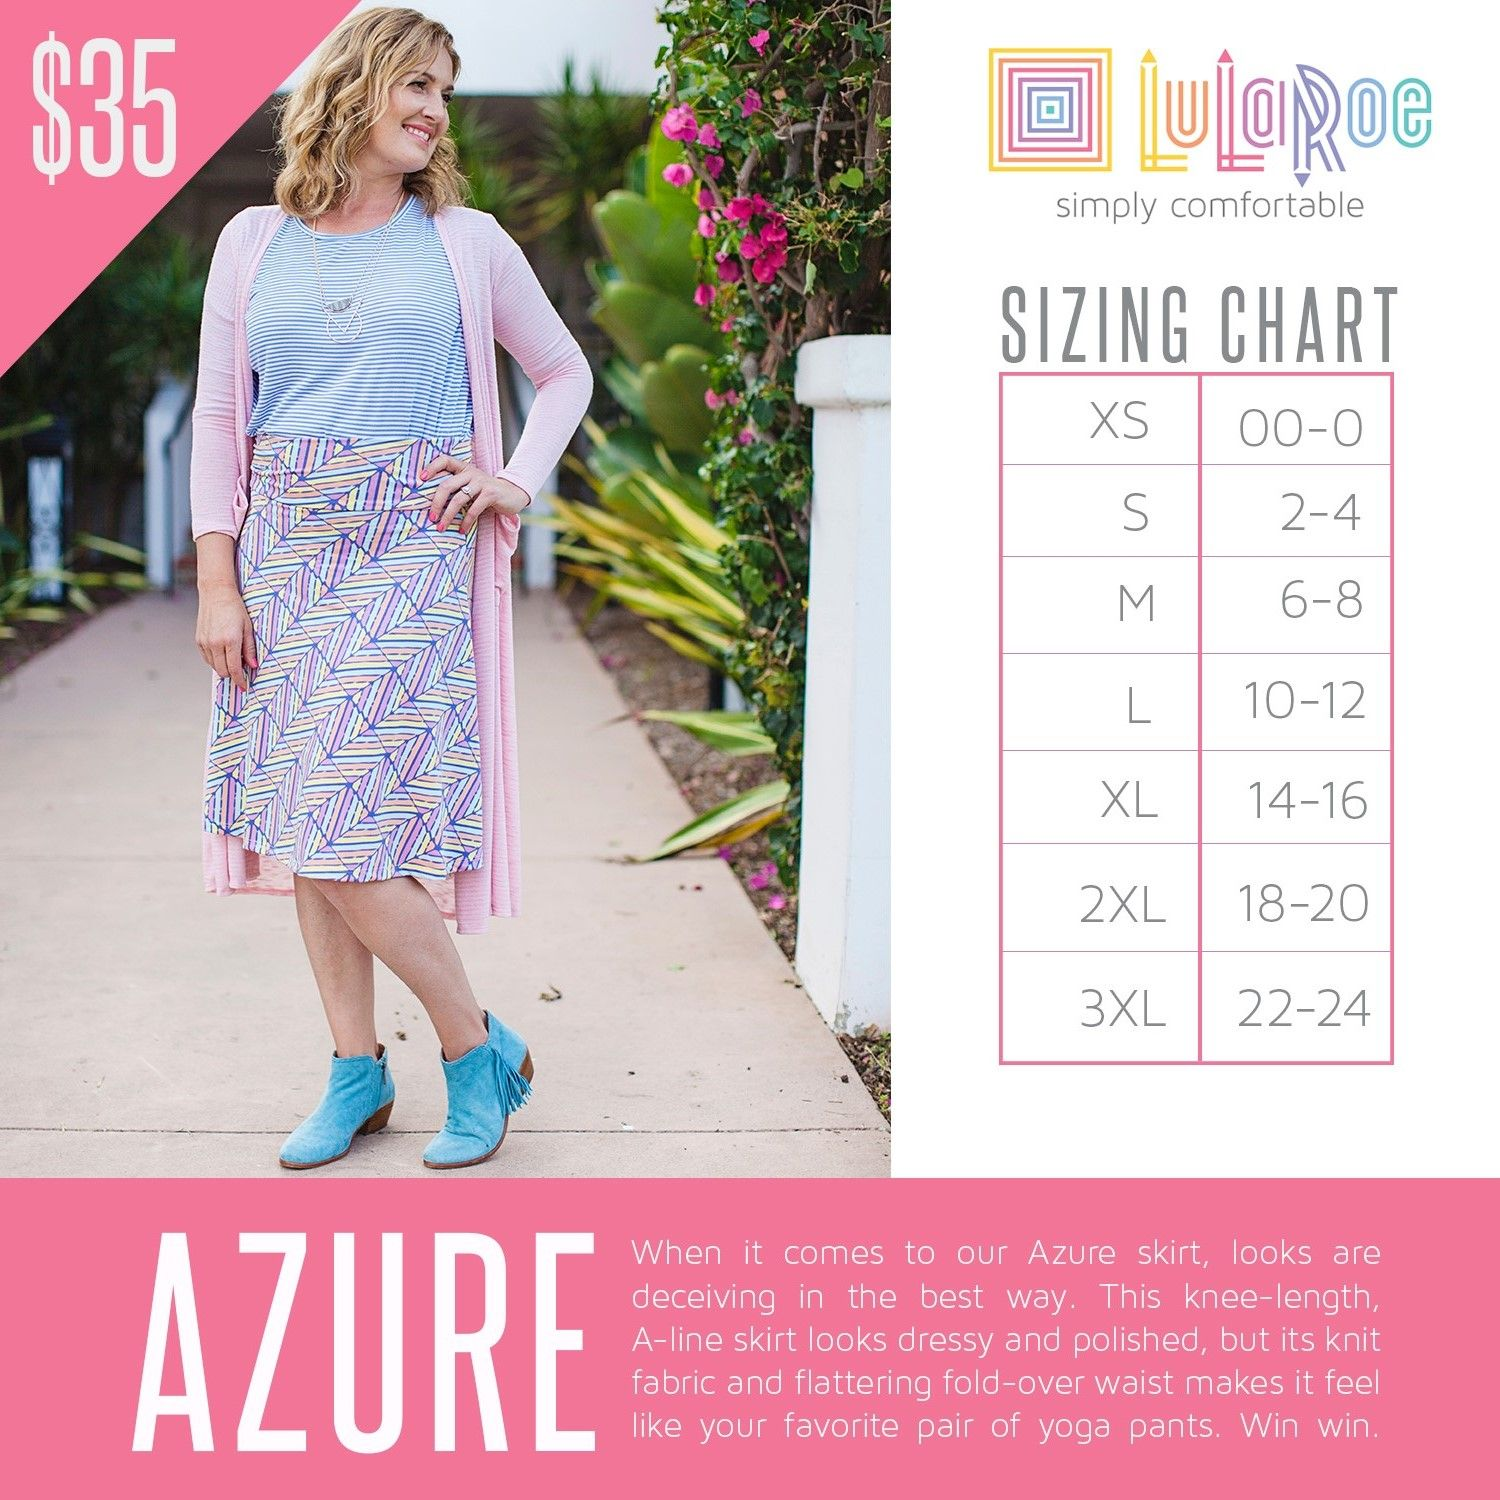 Here Is The Sizing Chart For Lularoe Azure Skirt Size